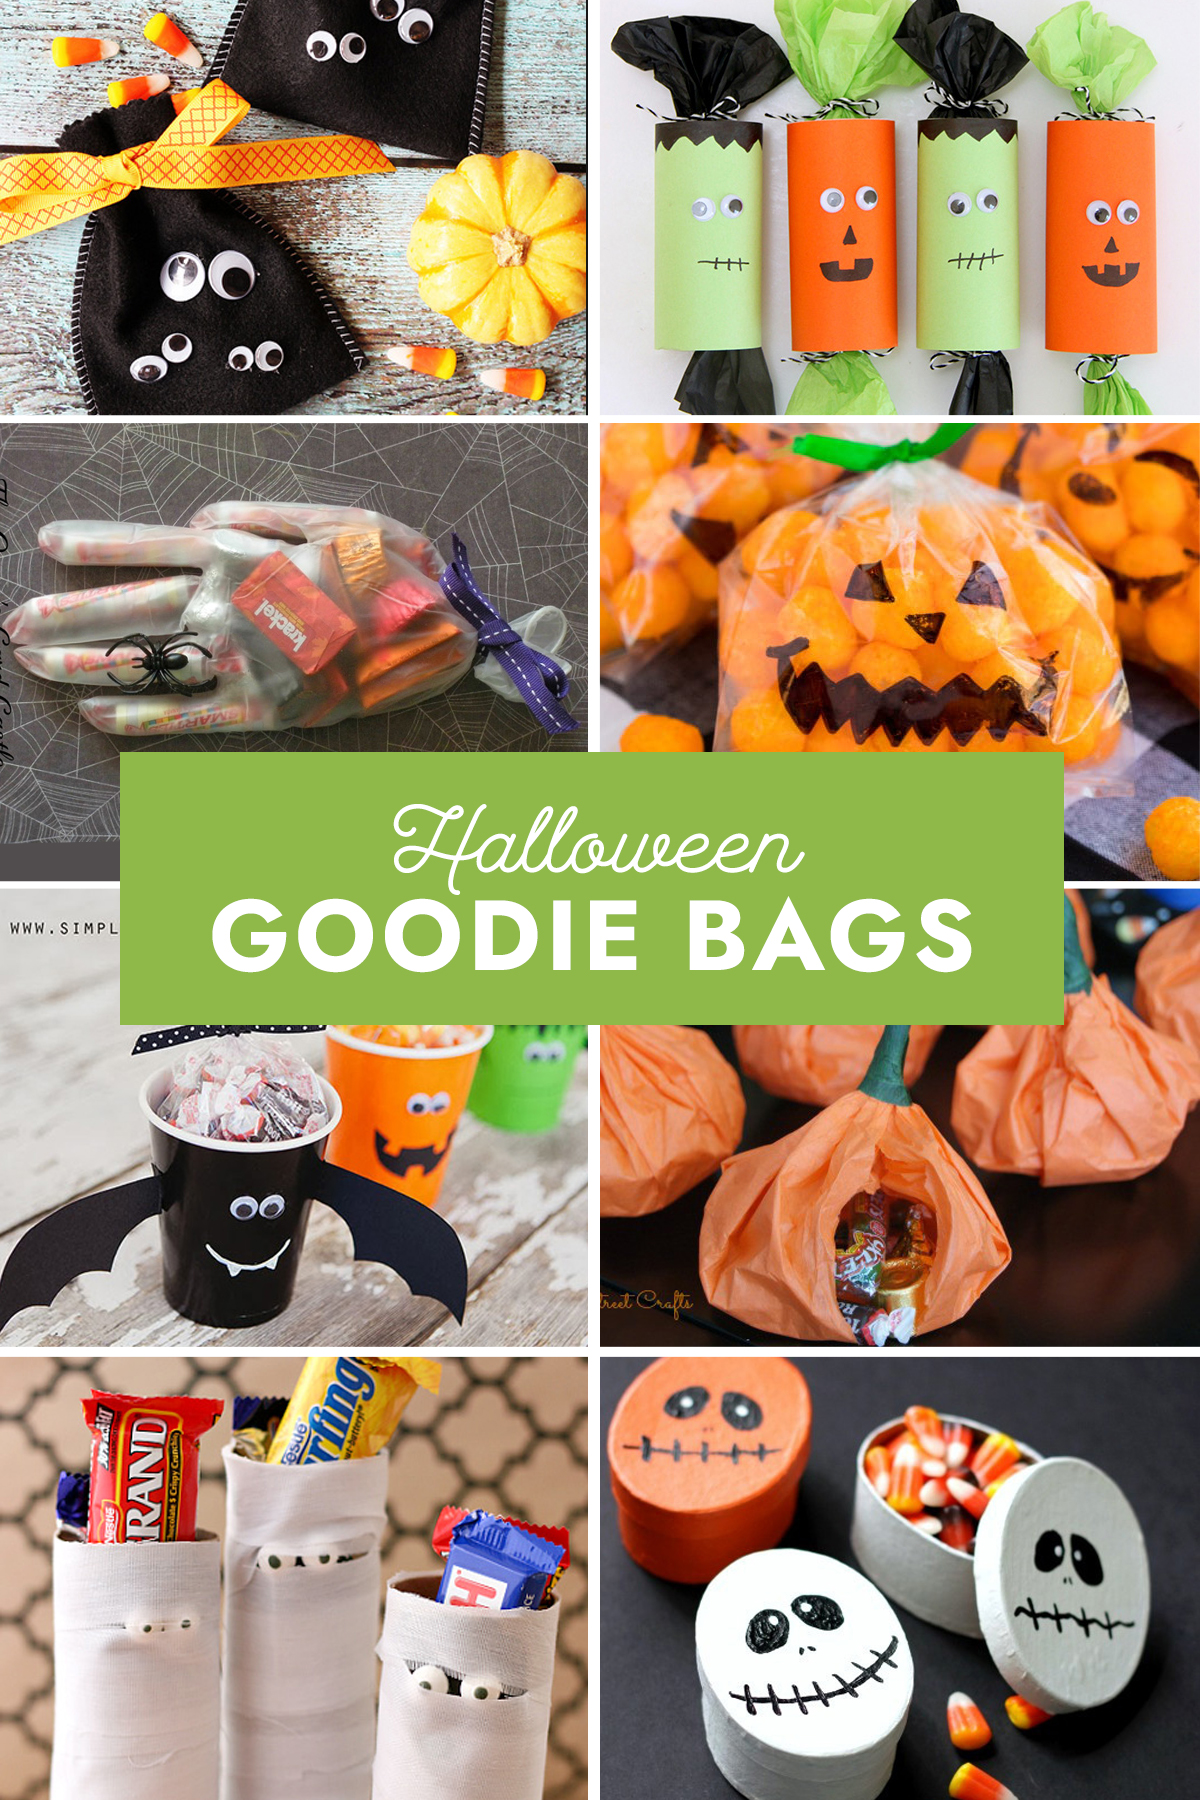 Halloween goodie bags collage